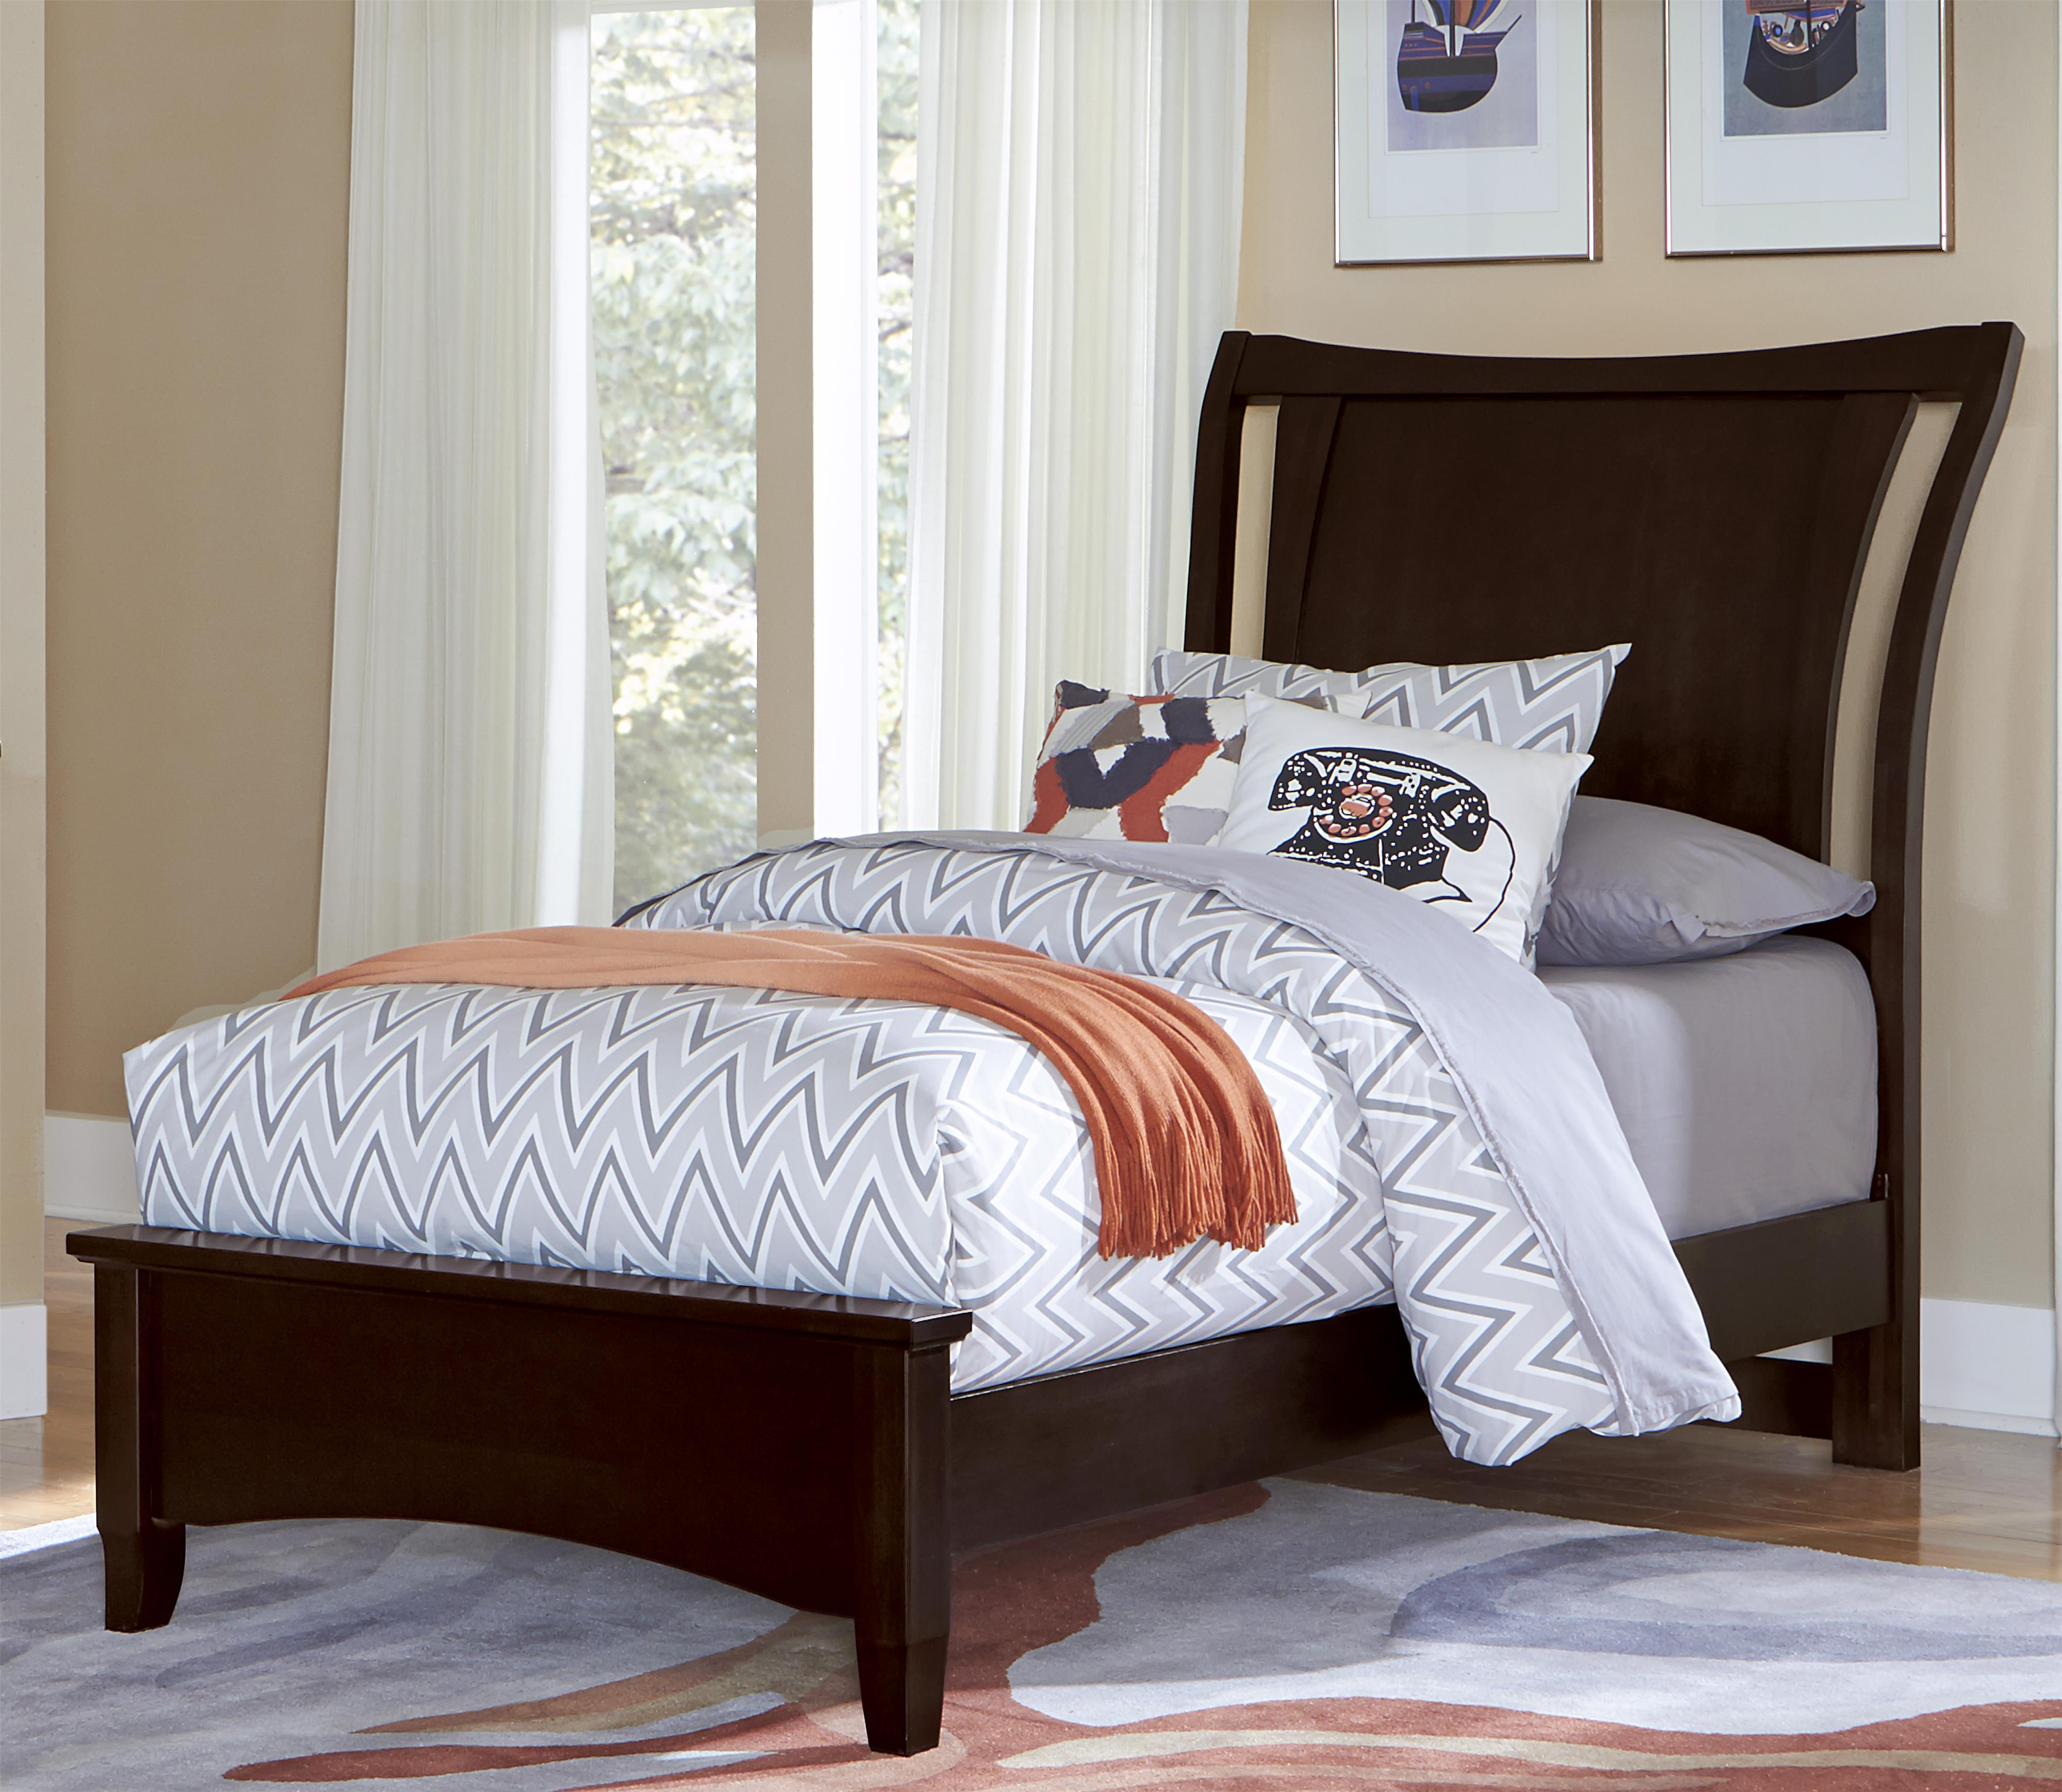 Vaughan Bassett Commentary Twin Wing Bed with Low Profile Footboard - Item Number: 390-331+133+900